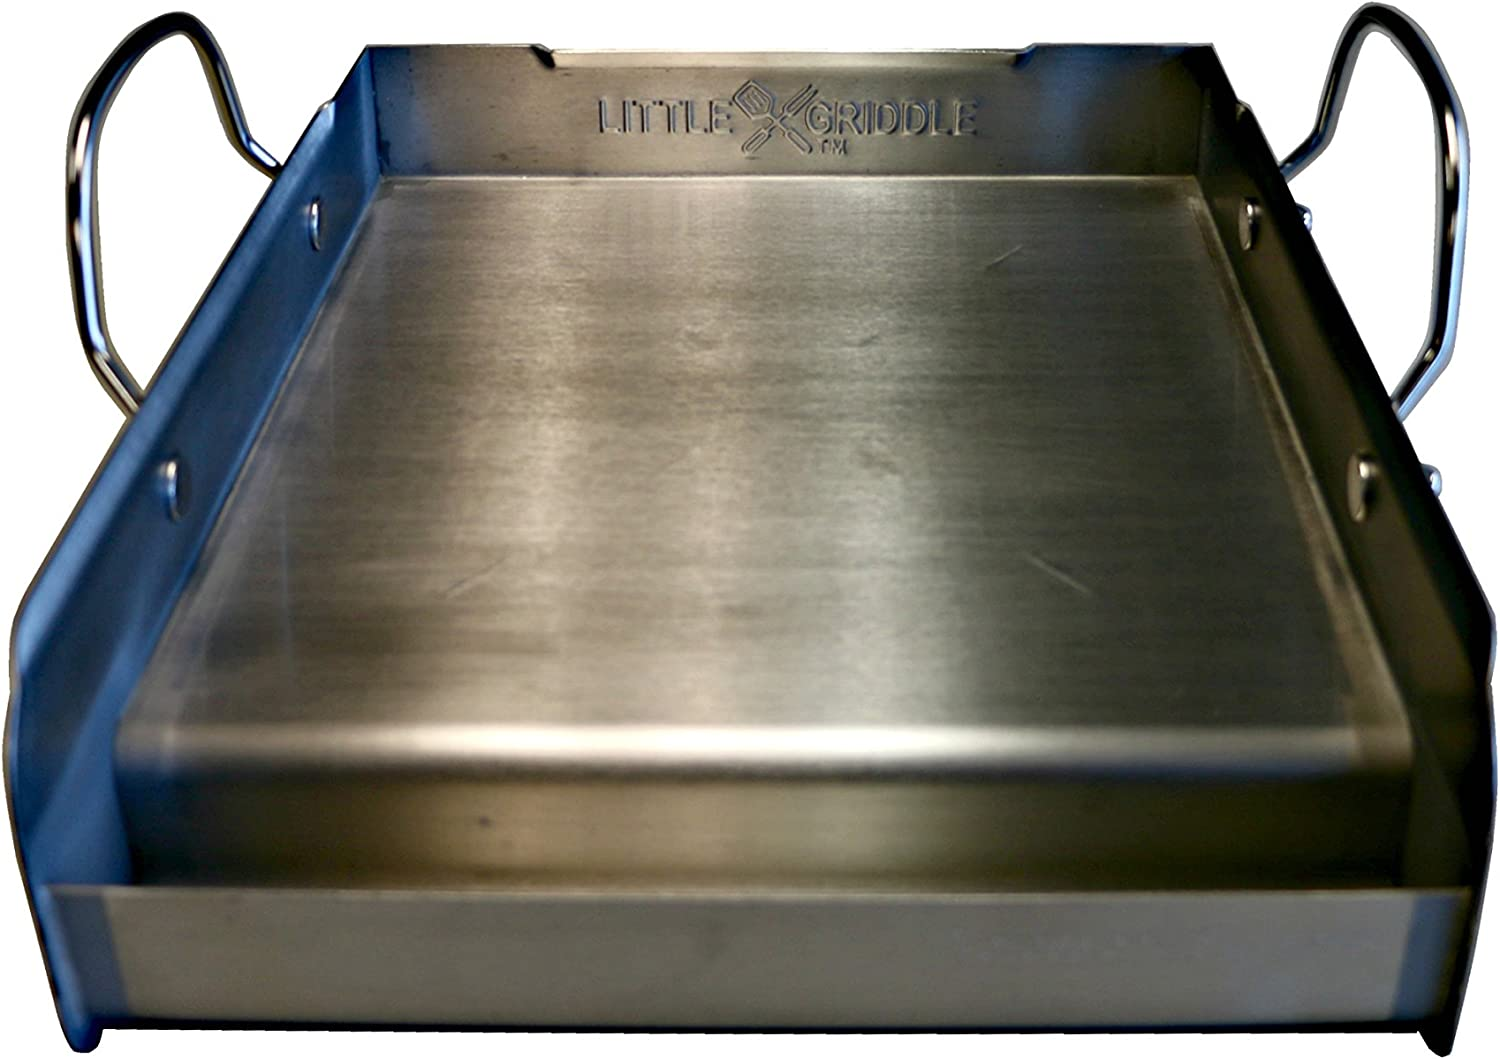 Best to handle: GQ120 Griddle